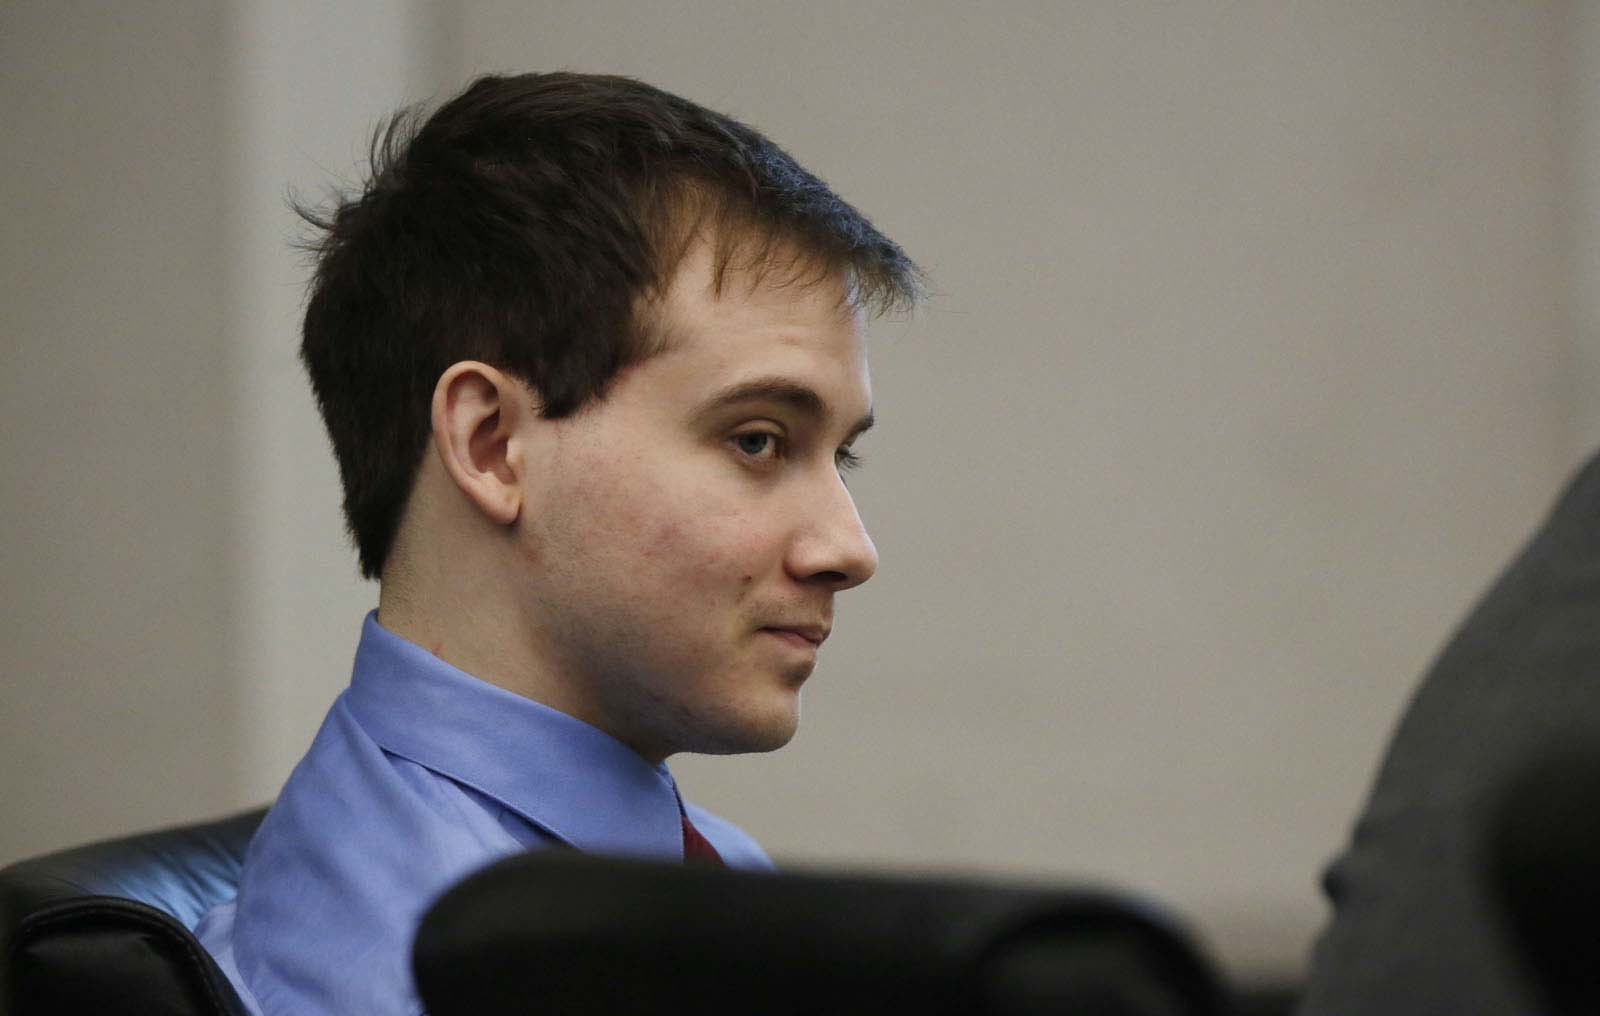 Pedro Bravo smirks while listening to his interview with Gainesville Police Det. Randy Roberts during Bravo's murder trial in courtroom 1B of the Alachua County Criminal Justice Center Monday, August 11, 2014.  Bravo is accused of killing University of Florida student Christian Aguilar.  (Doug Finger/The Gainesville Sun/Pool)